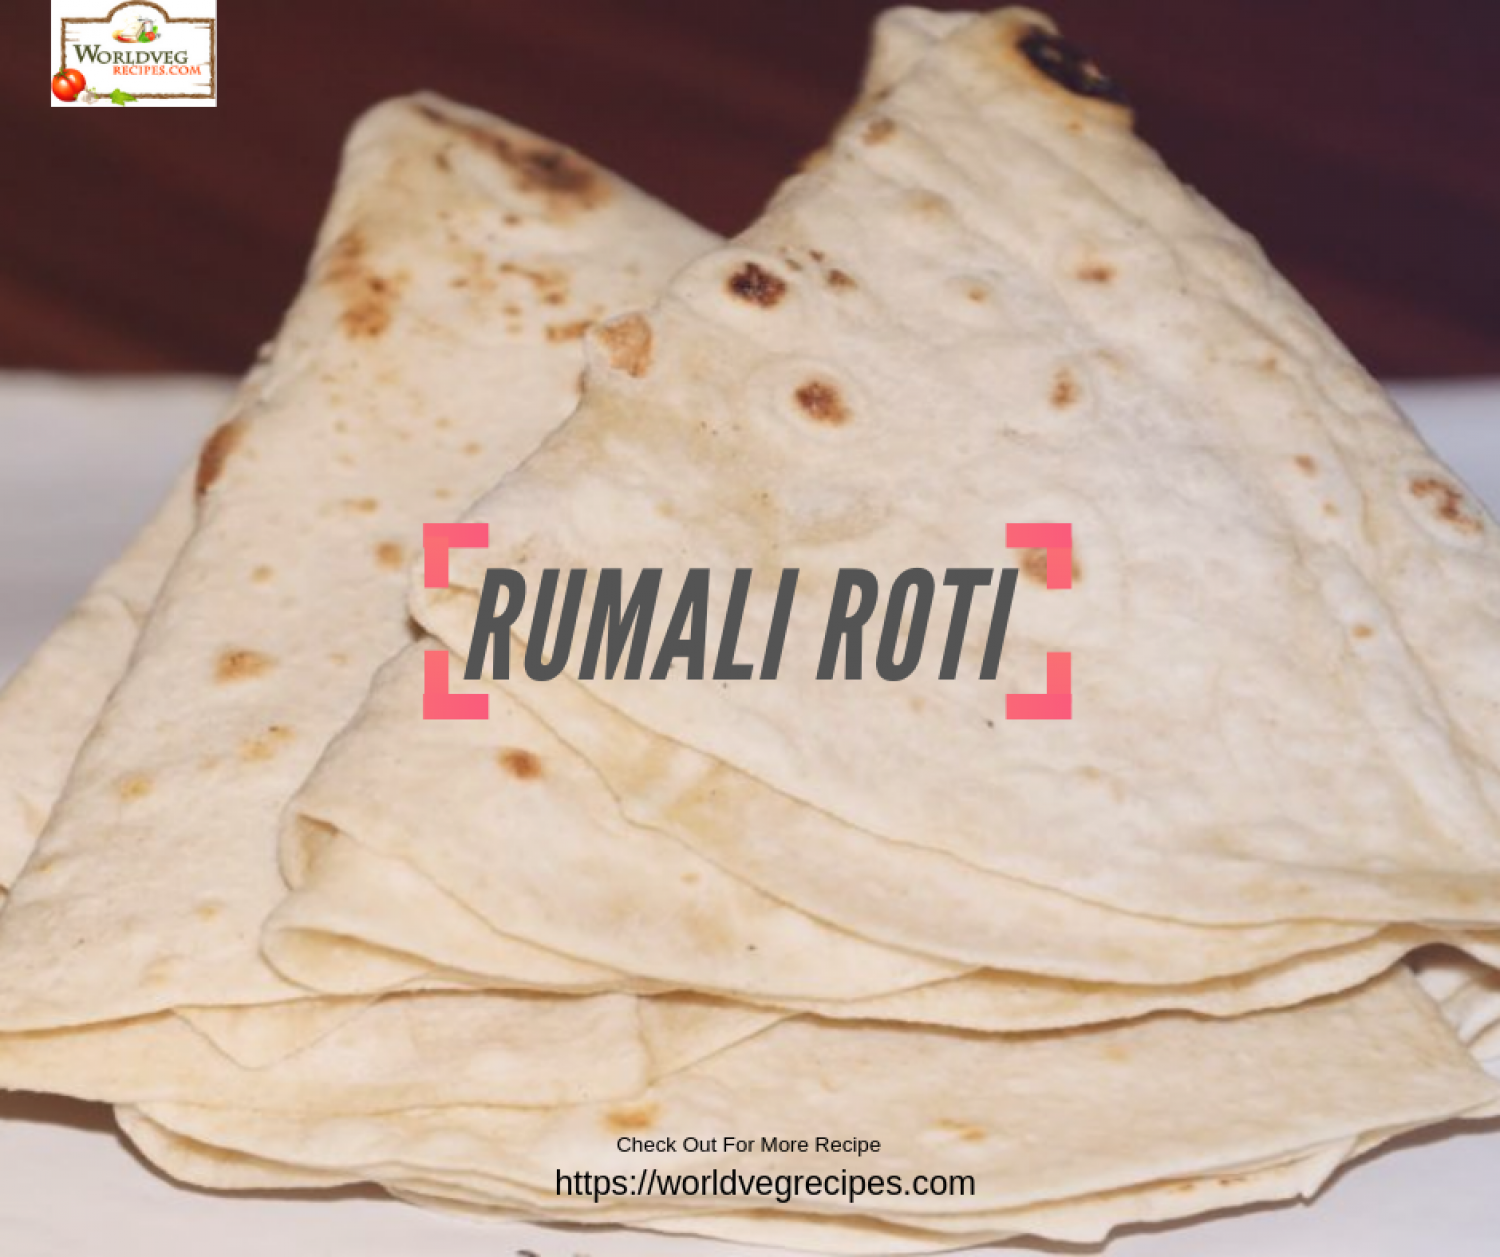 Rumali Roti Recipe | Easy Roti Recipe Infographic